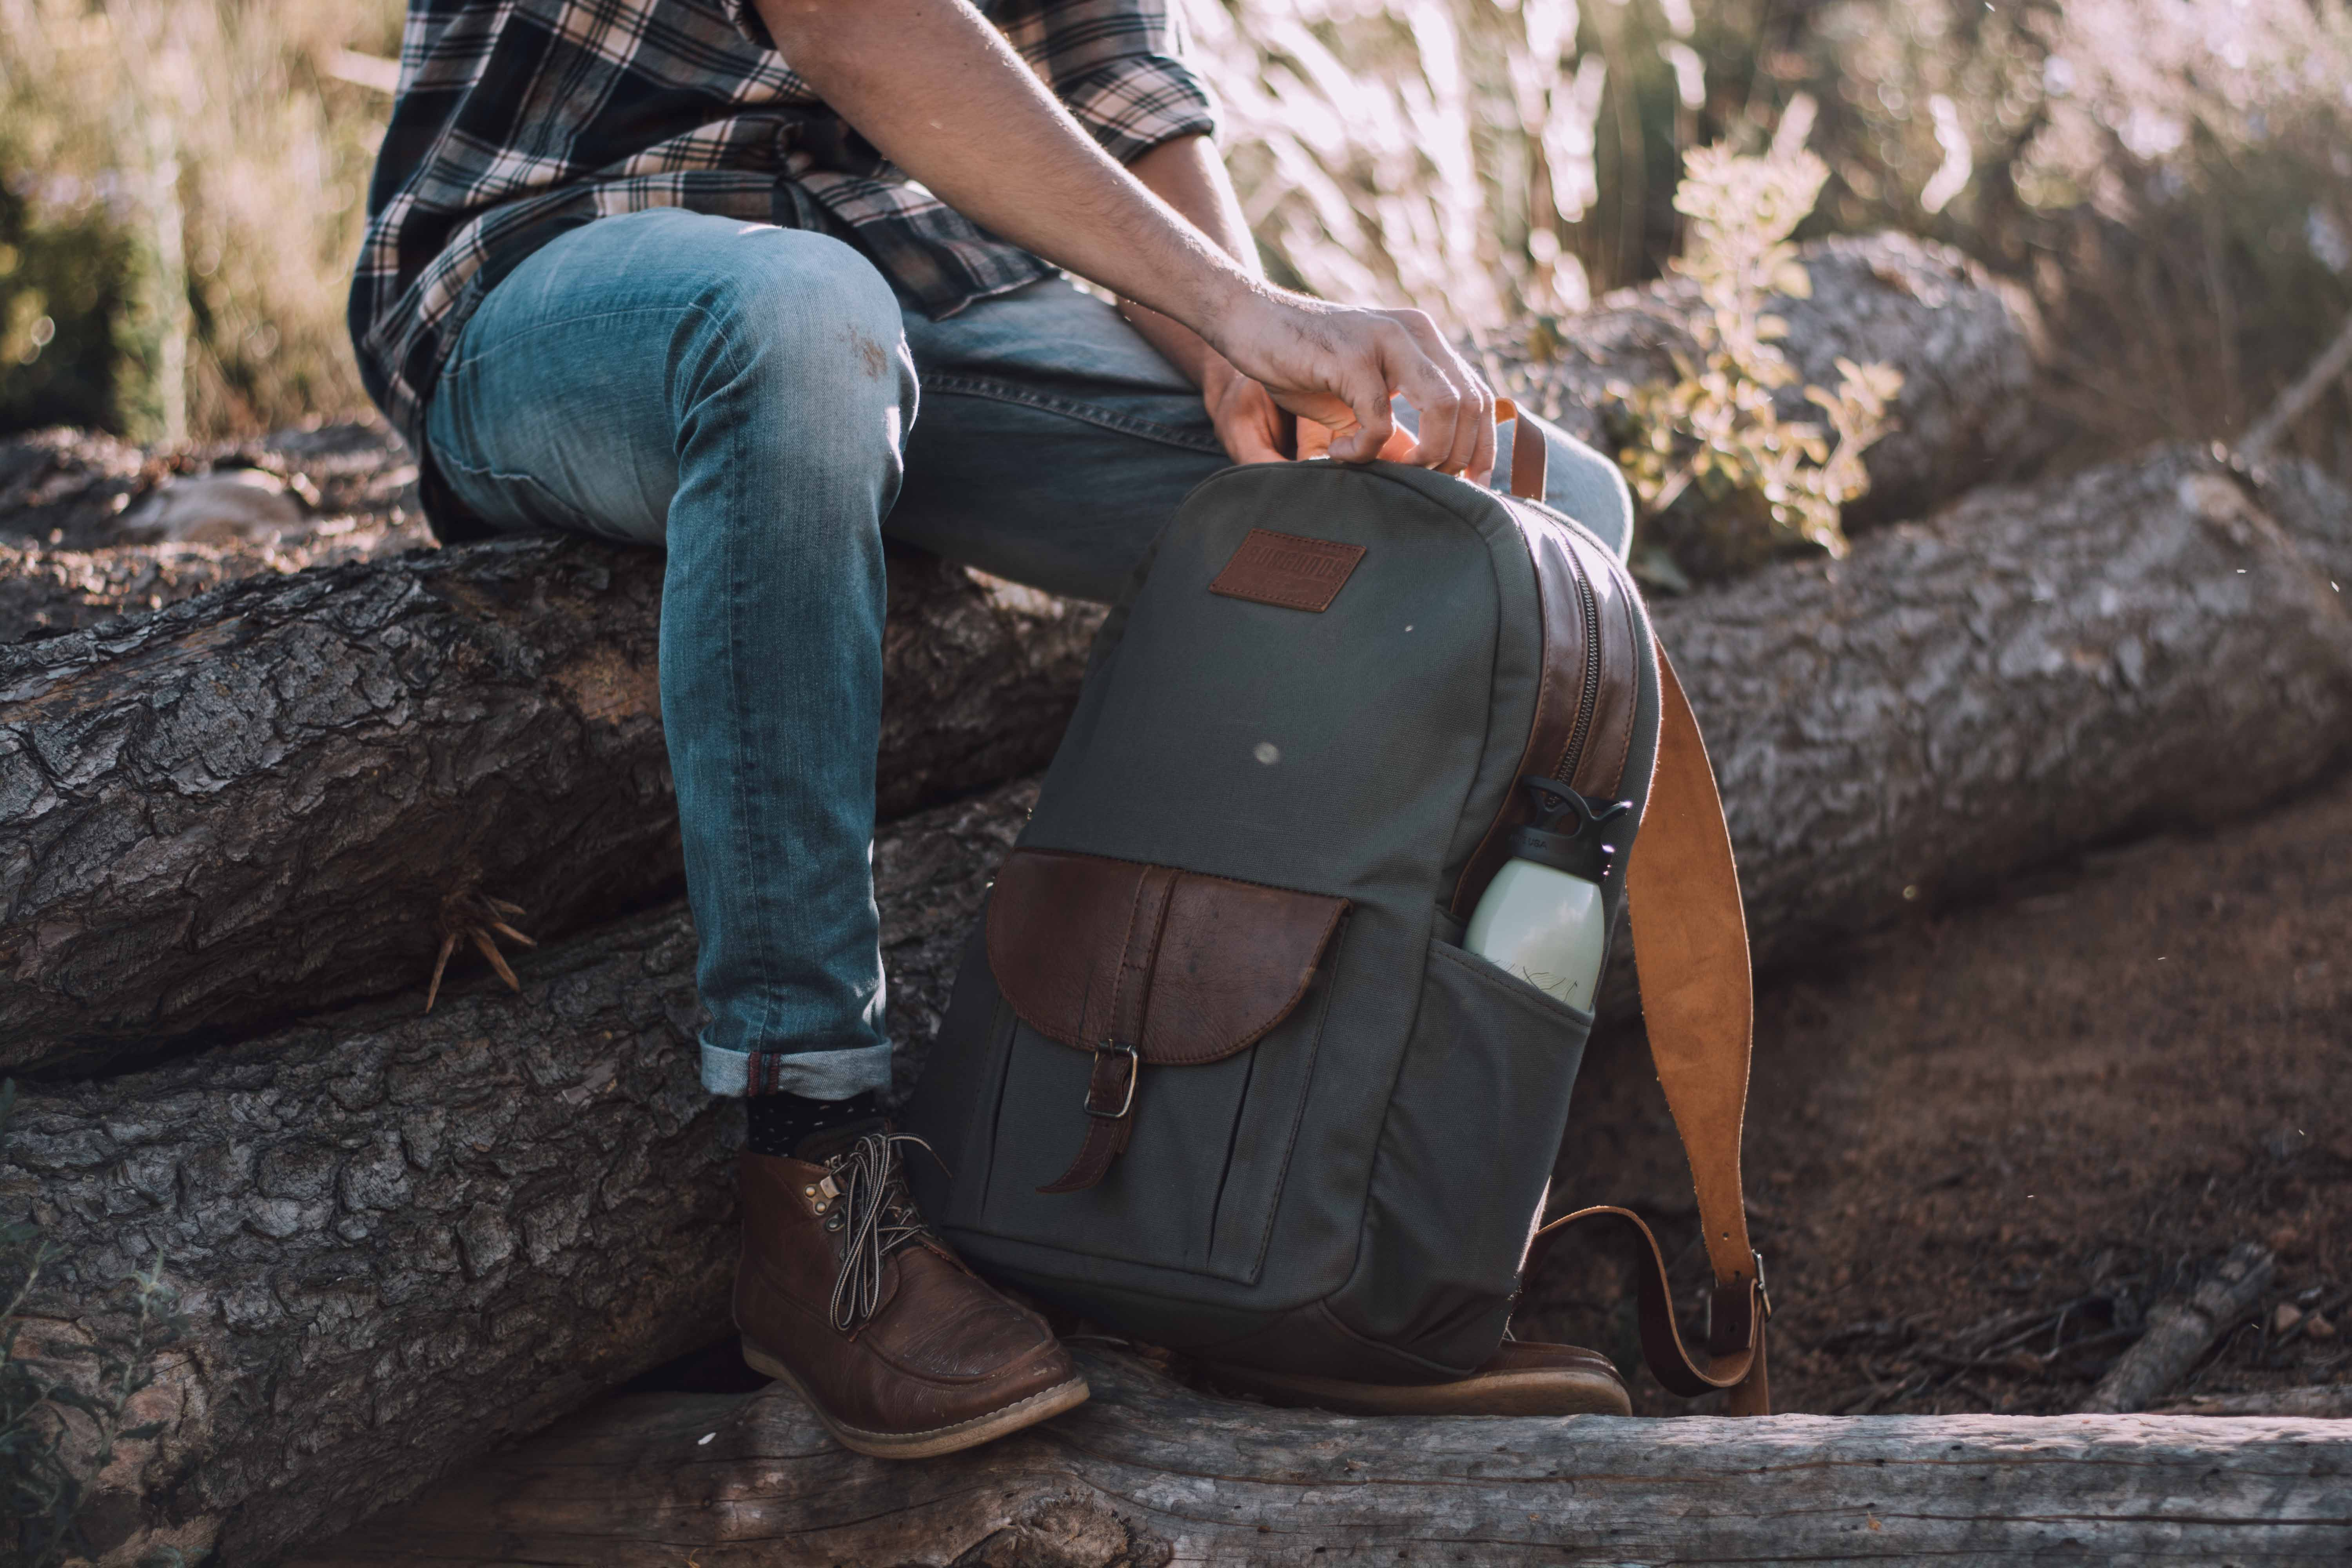 """Perfect traveling companion for the adventurous person. Perfectly designed for any outdoor trips.    FEATURES:   Durable cotton canvas interior & exterior - water repellent Premium vegetable tanned leather straps - 2mm Adjustable back strap system with shoulder pads Secure top zip closure with foam padded back & bottom Fits 15"""" Laptop Back zip pocket with 2x exterior side pockets     DIMENSIONS:  H 42cm x W 30cm x D 13cm"""